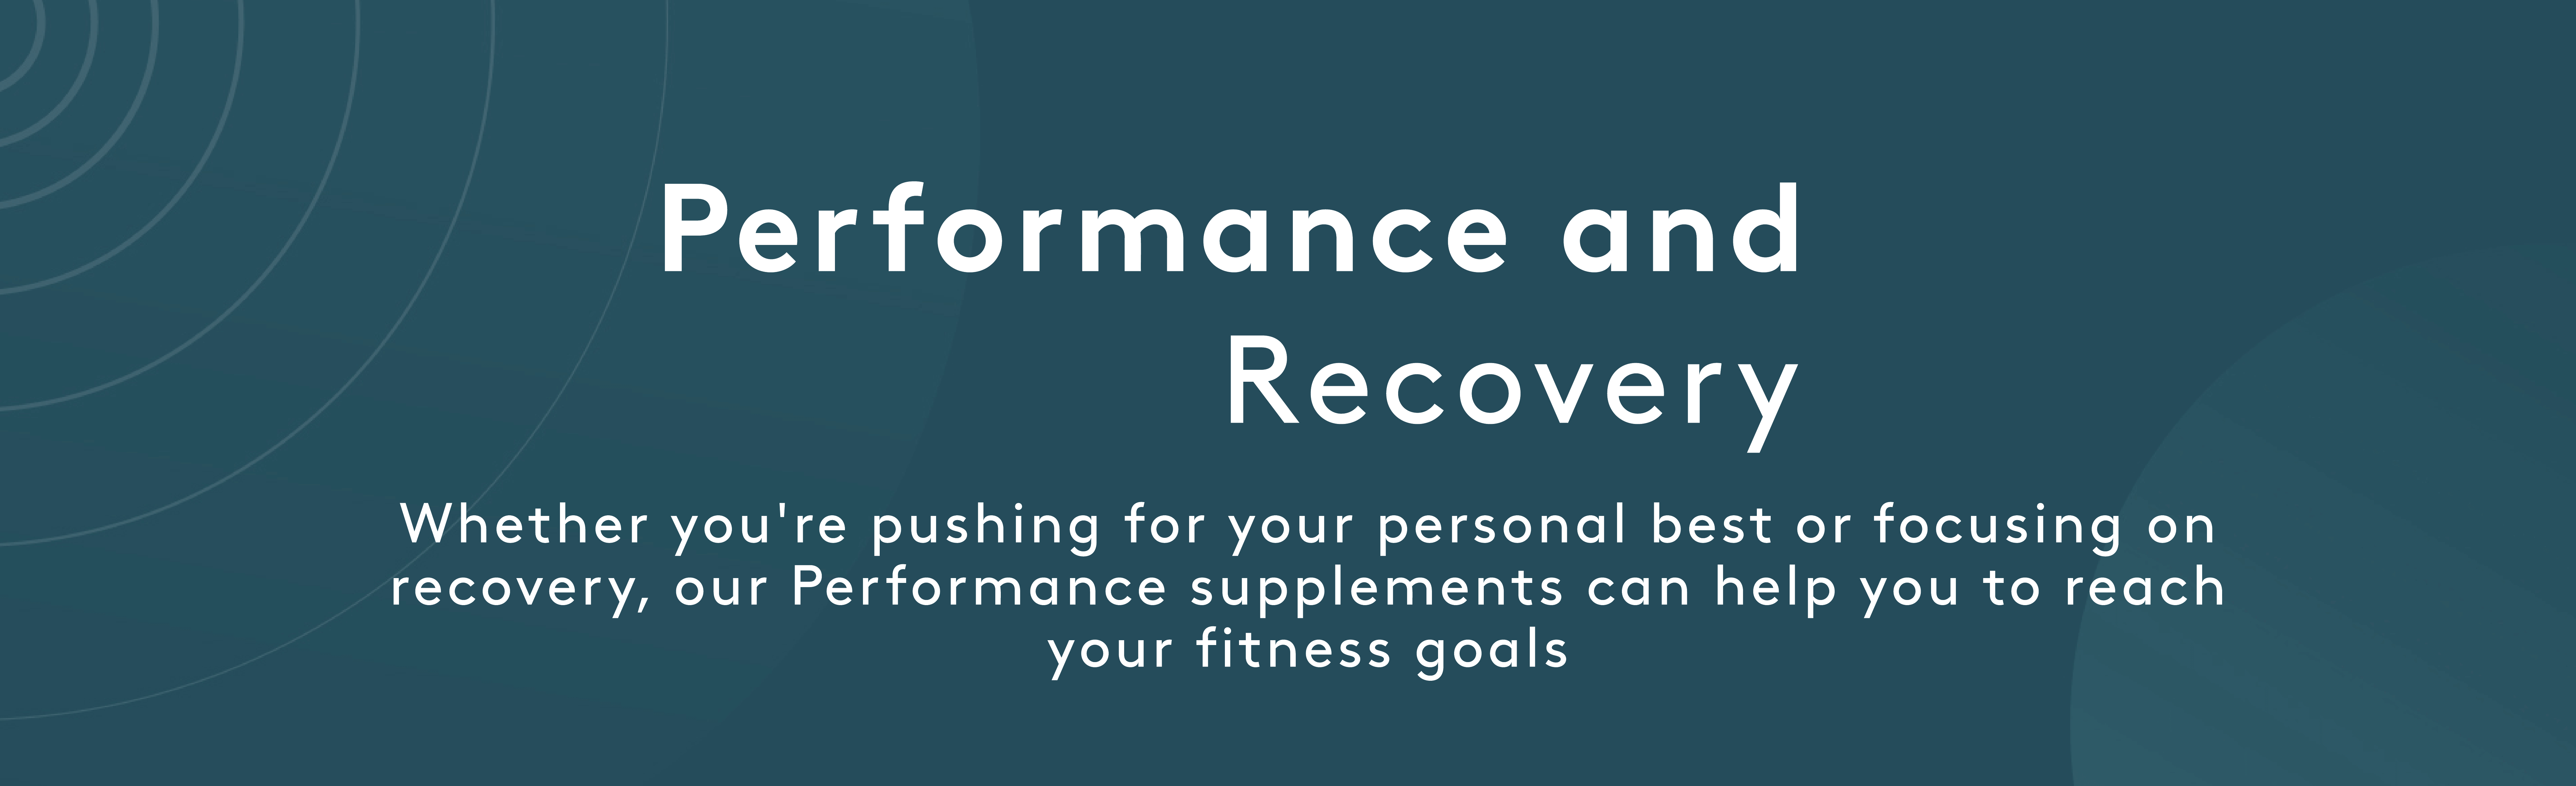 Performance | Myvitamins